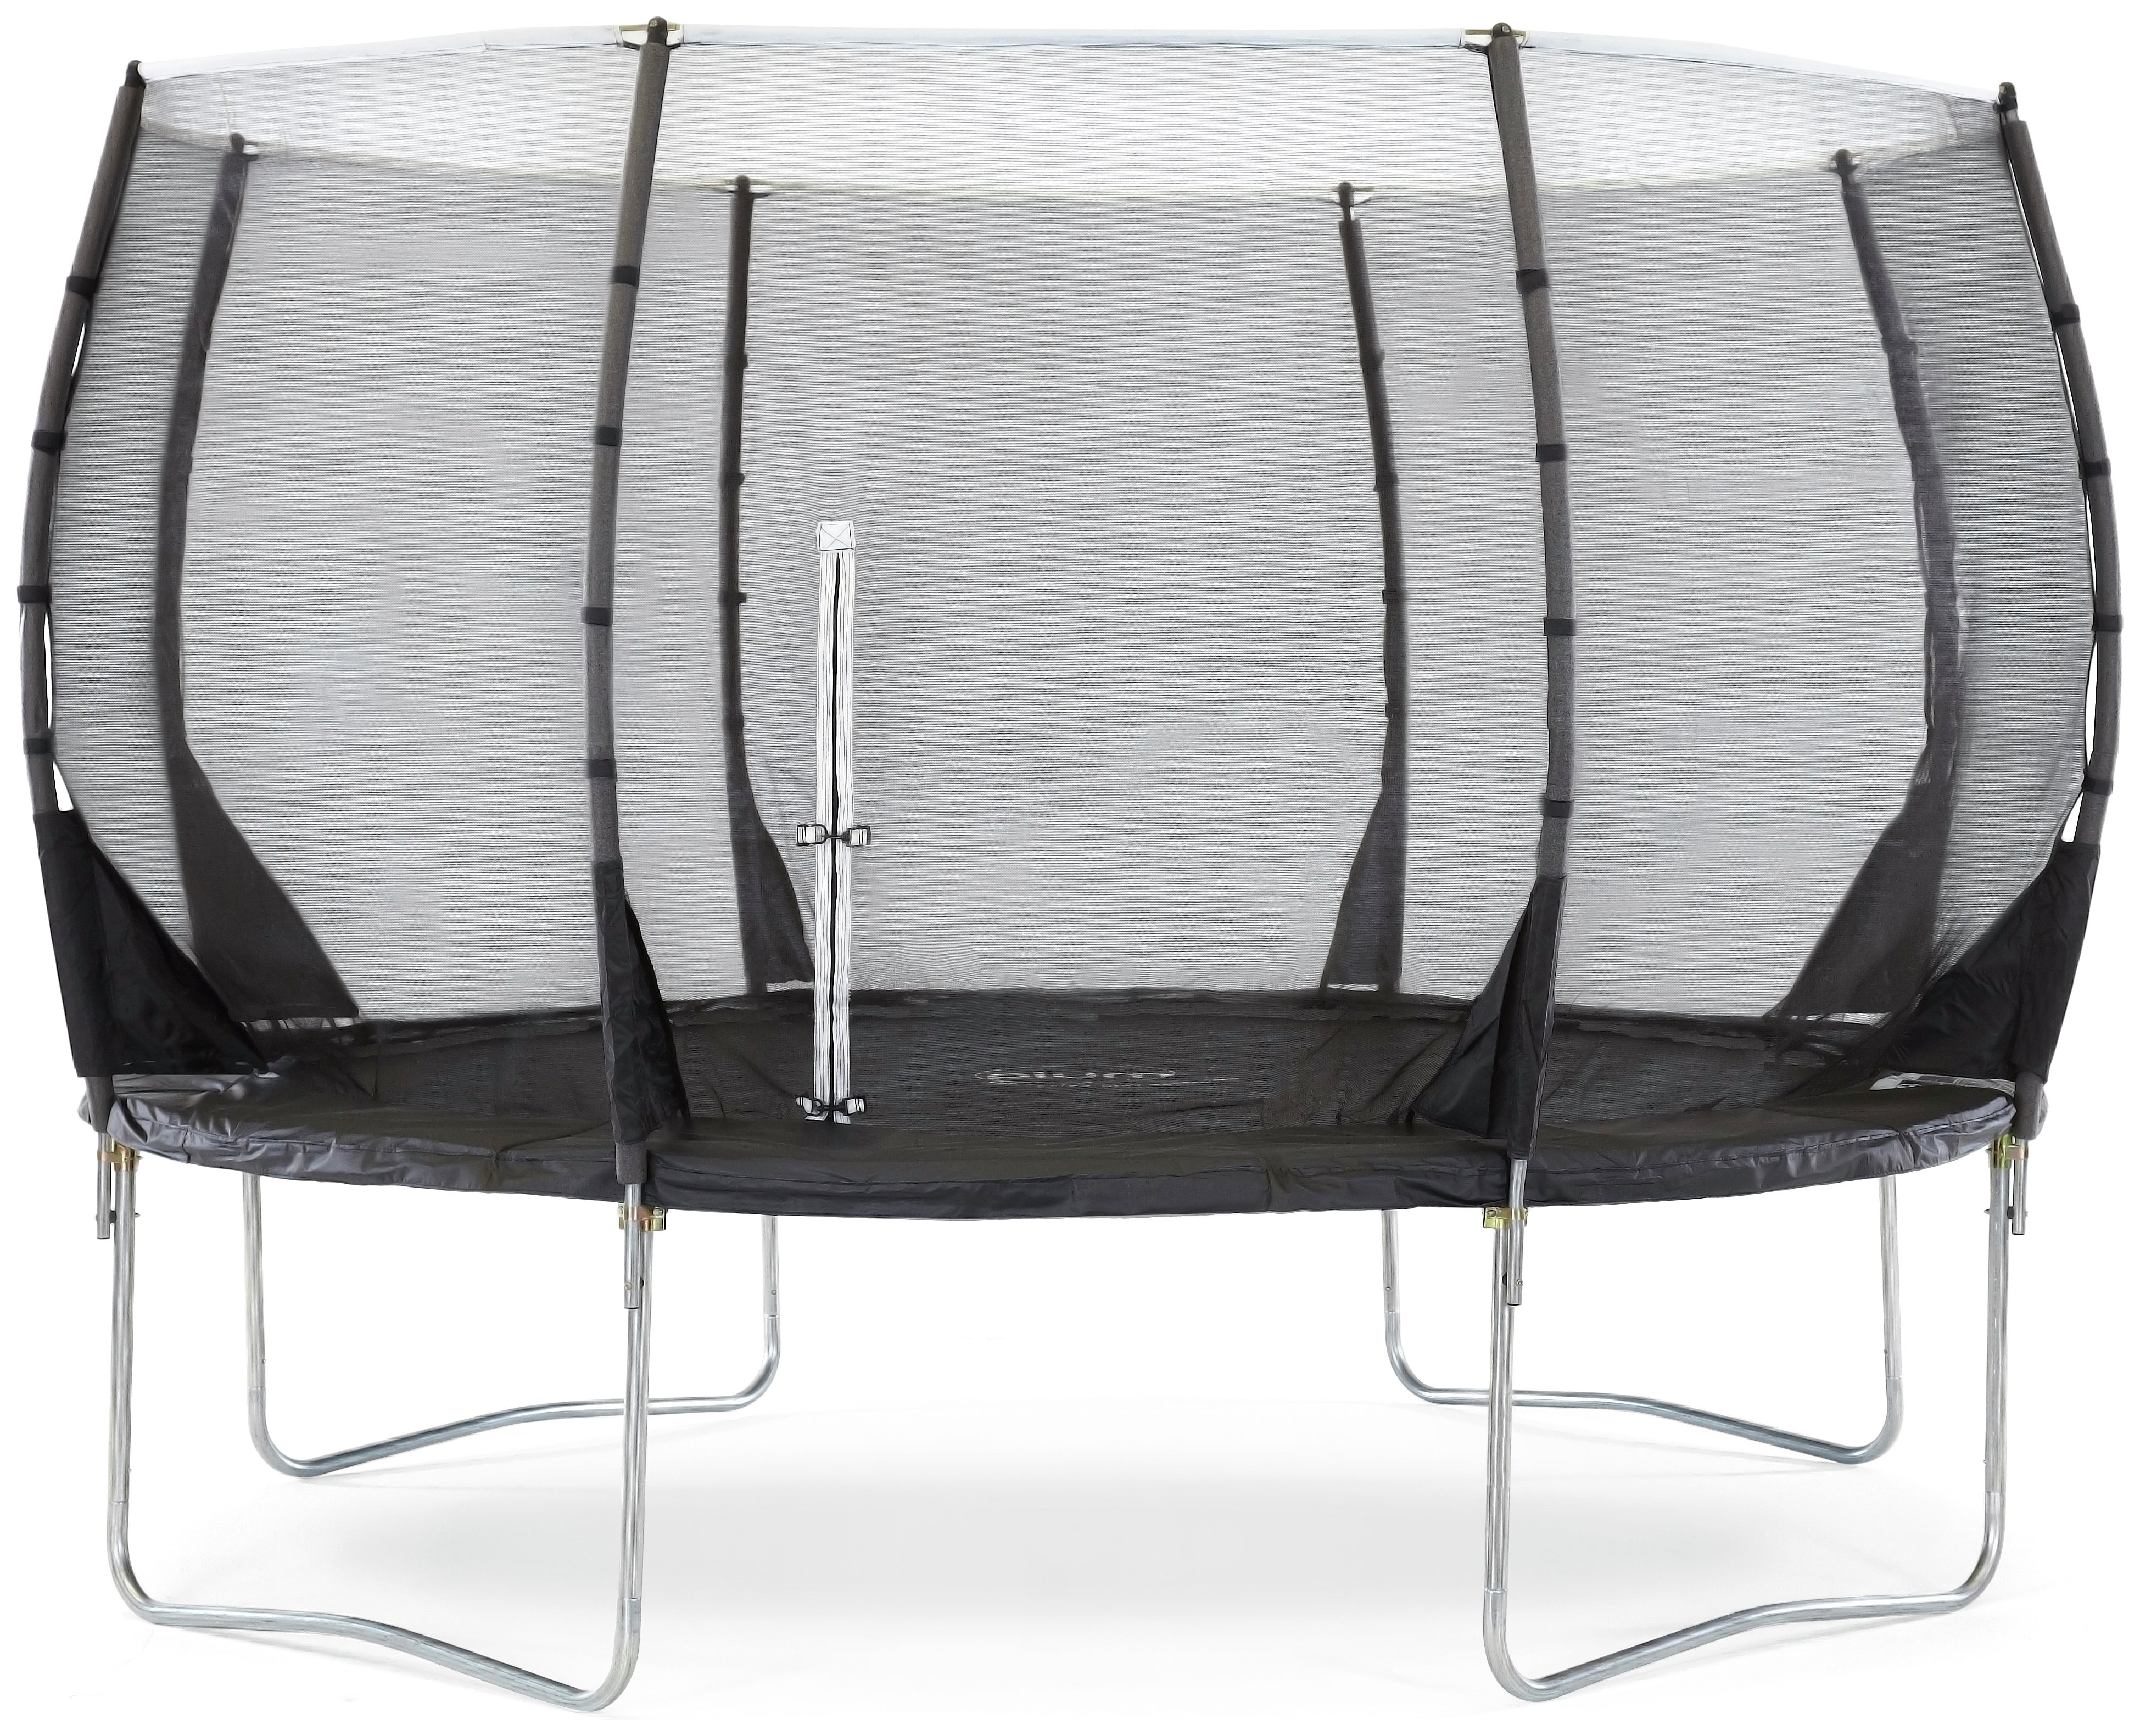 Plum 12ft Magnitude Springsafe Trampoline With Enclosure